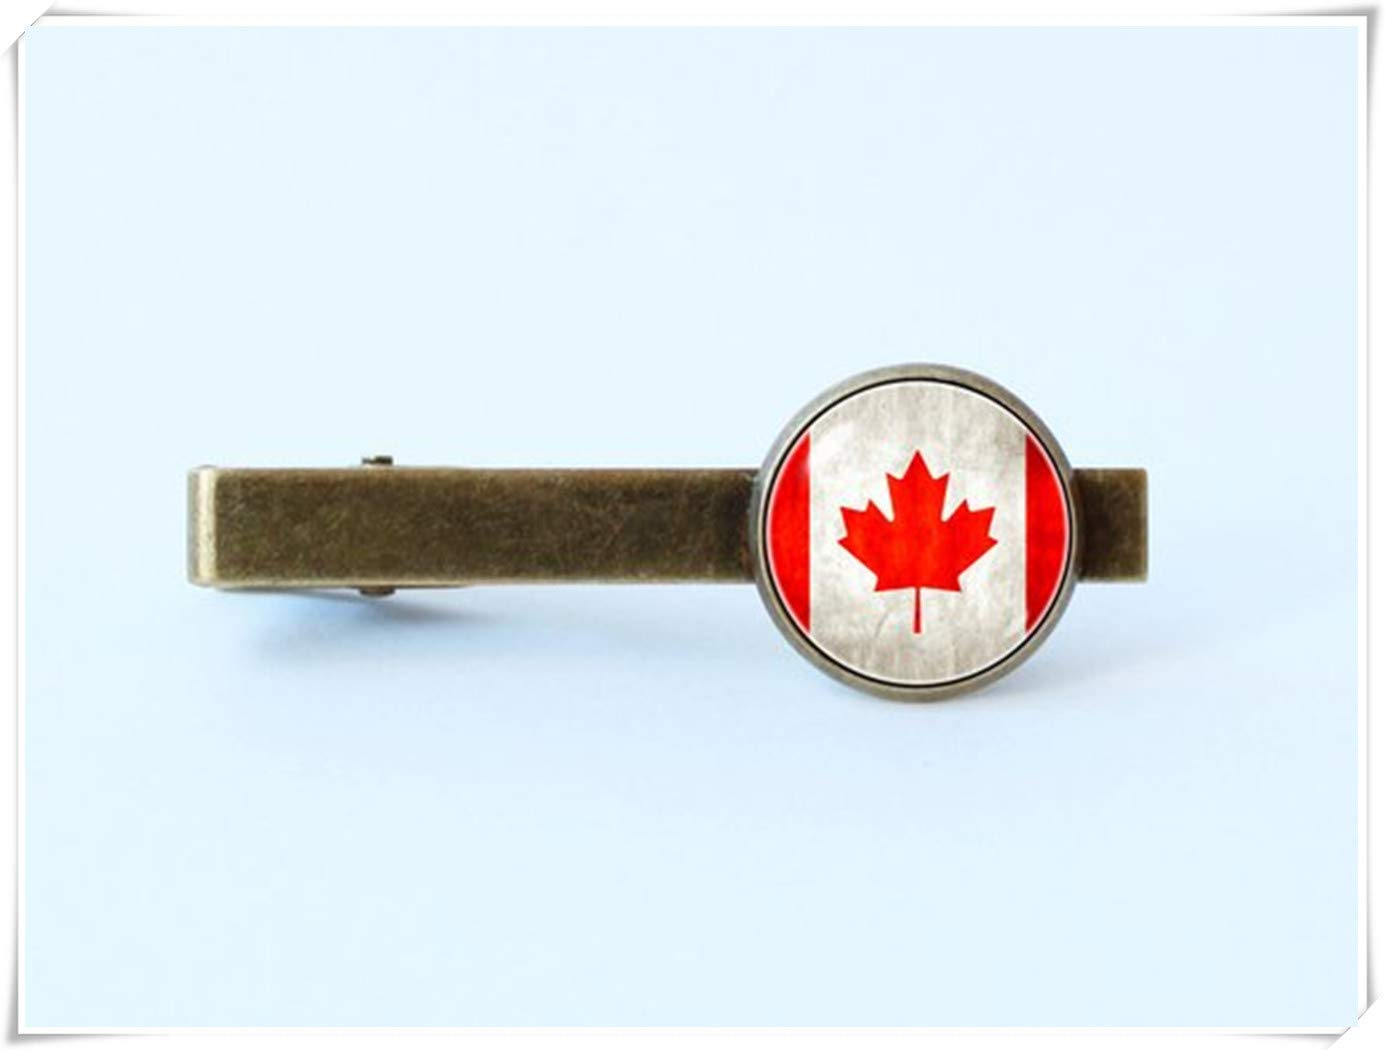 we are Forever family Red Maple Leaf Canada Flag tie Clip, Husband Gift,Men Gift,Men Accessories,Canadian Flag Flag tie bar,Men Jewellery